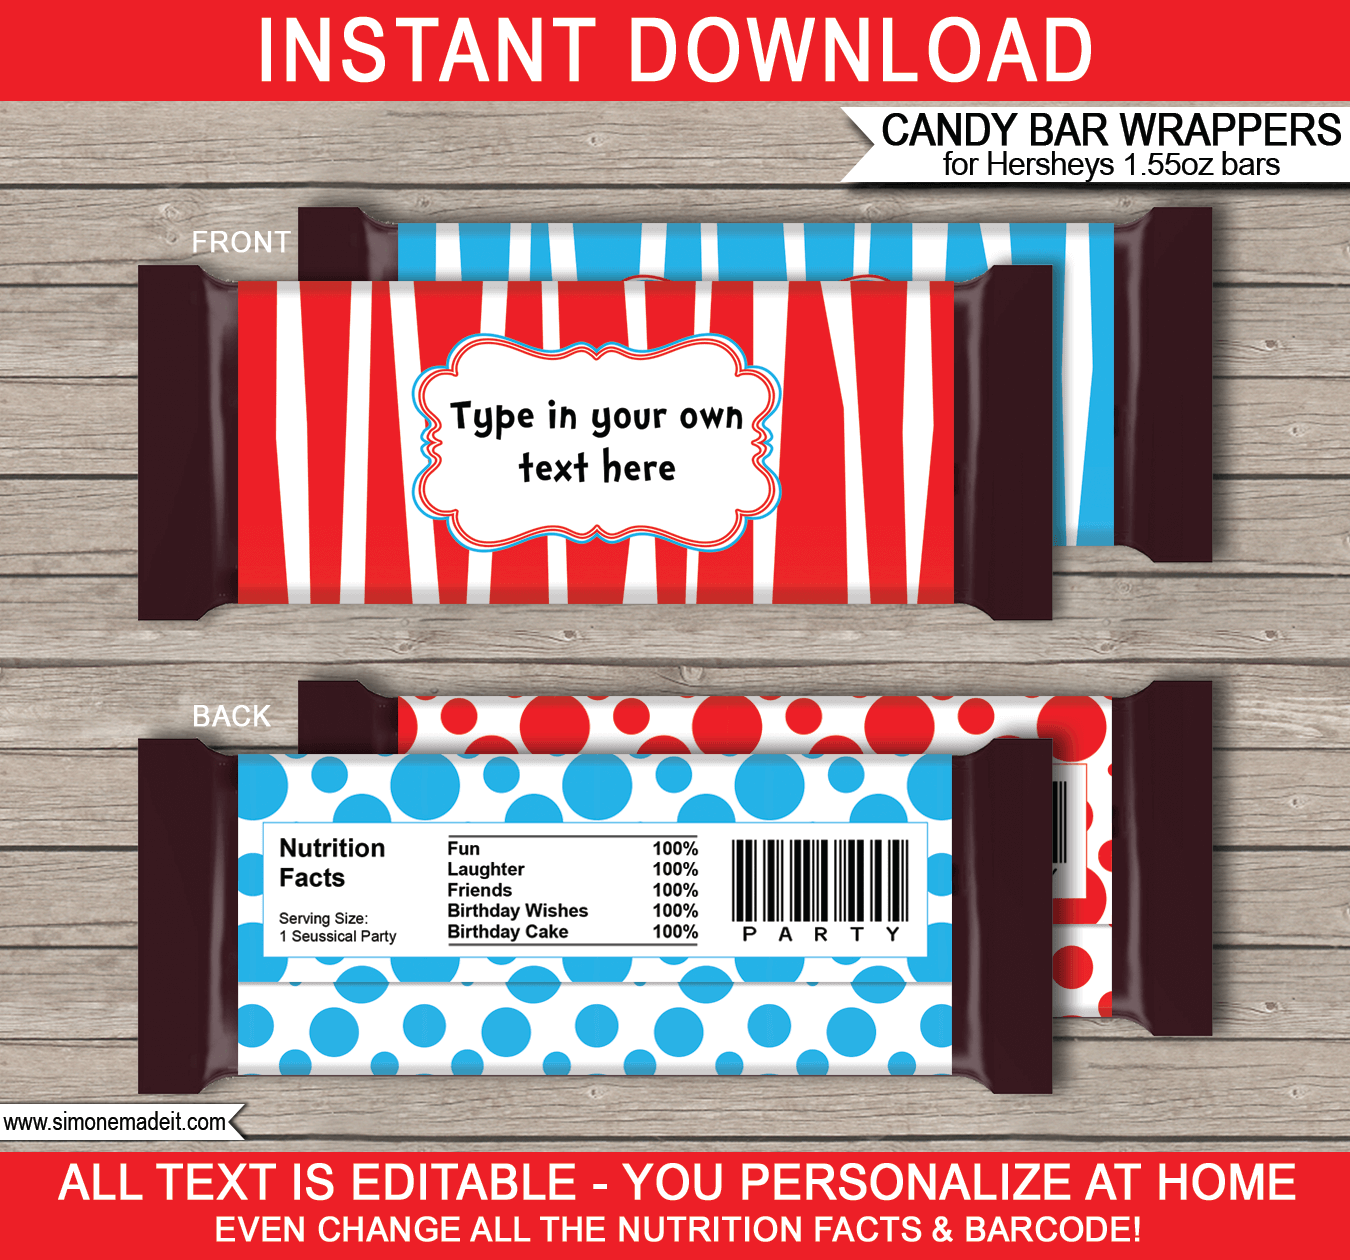 dr seuss hershey candy bar wrappers personalized candy bars. Black Bedroom Furniture Sets. Home Design Ideas